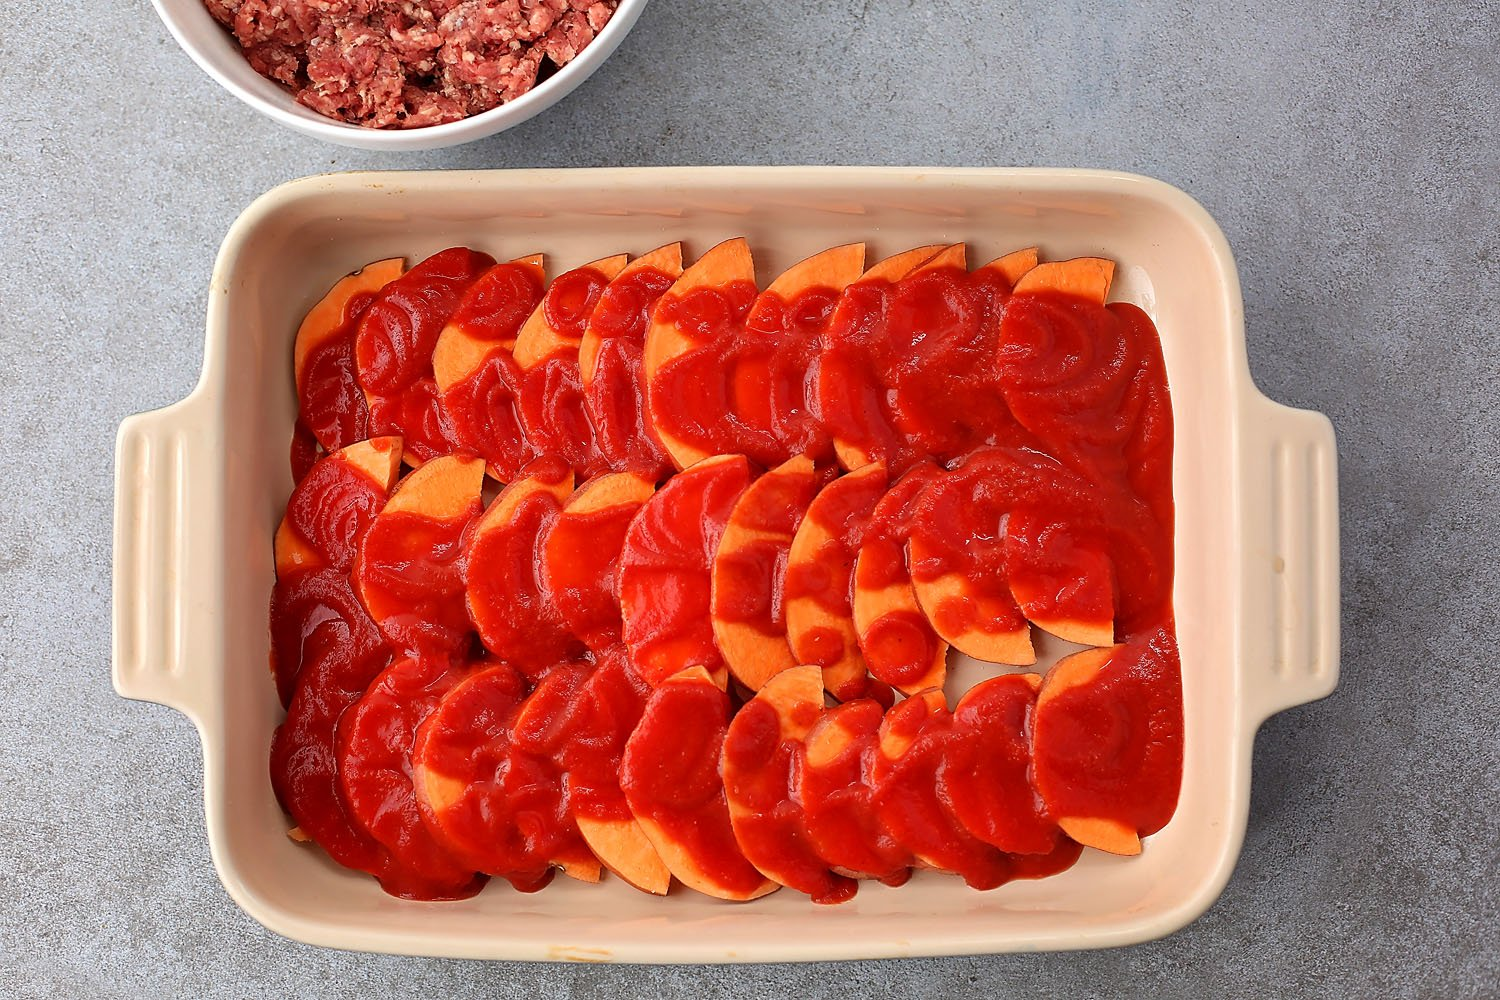 layered sweet potatoes in the casserole dish